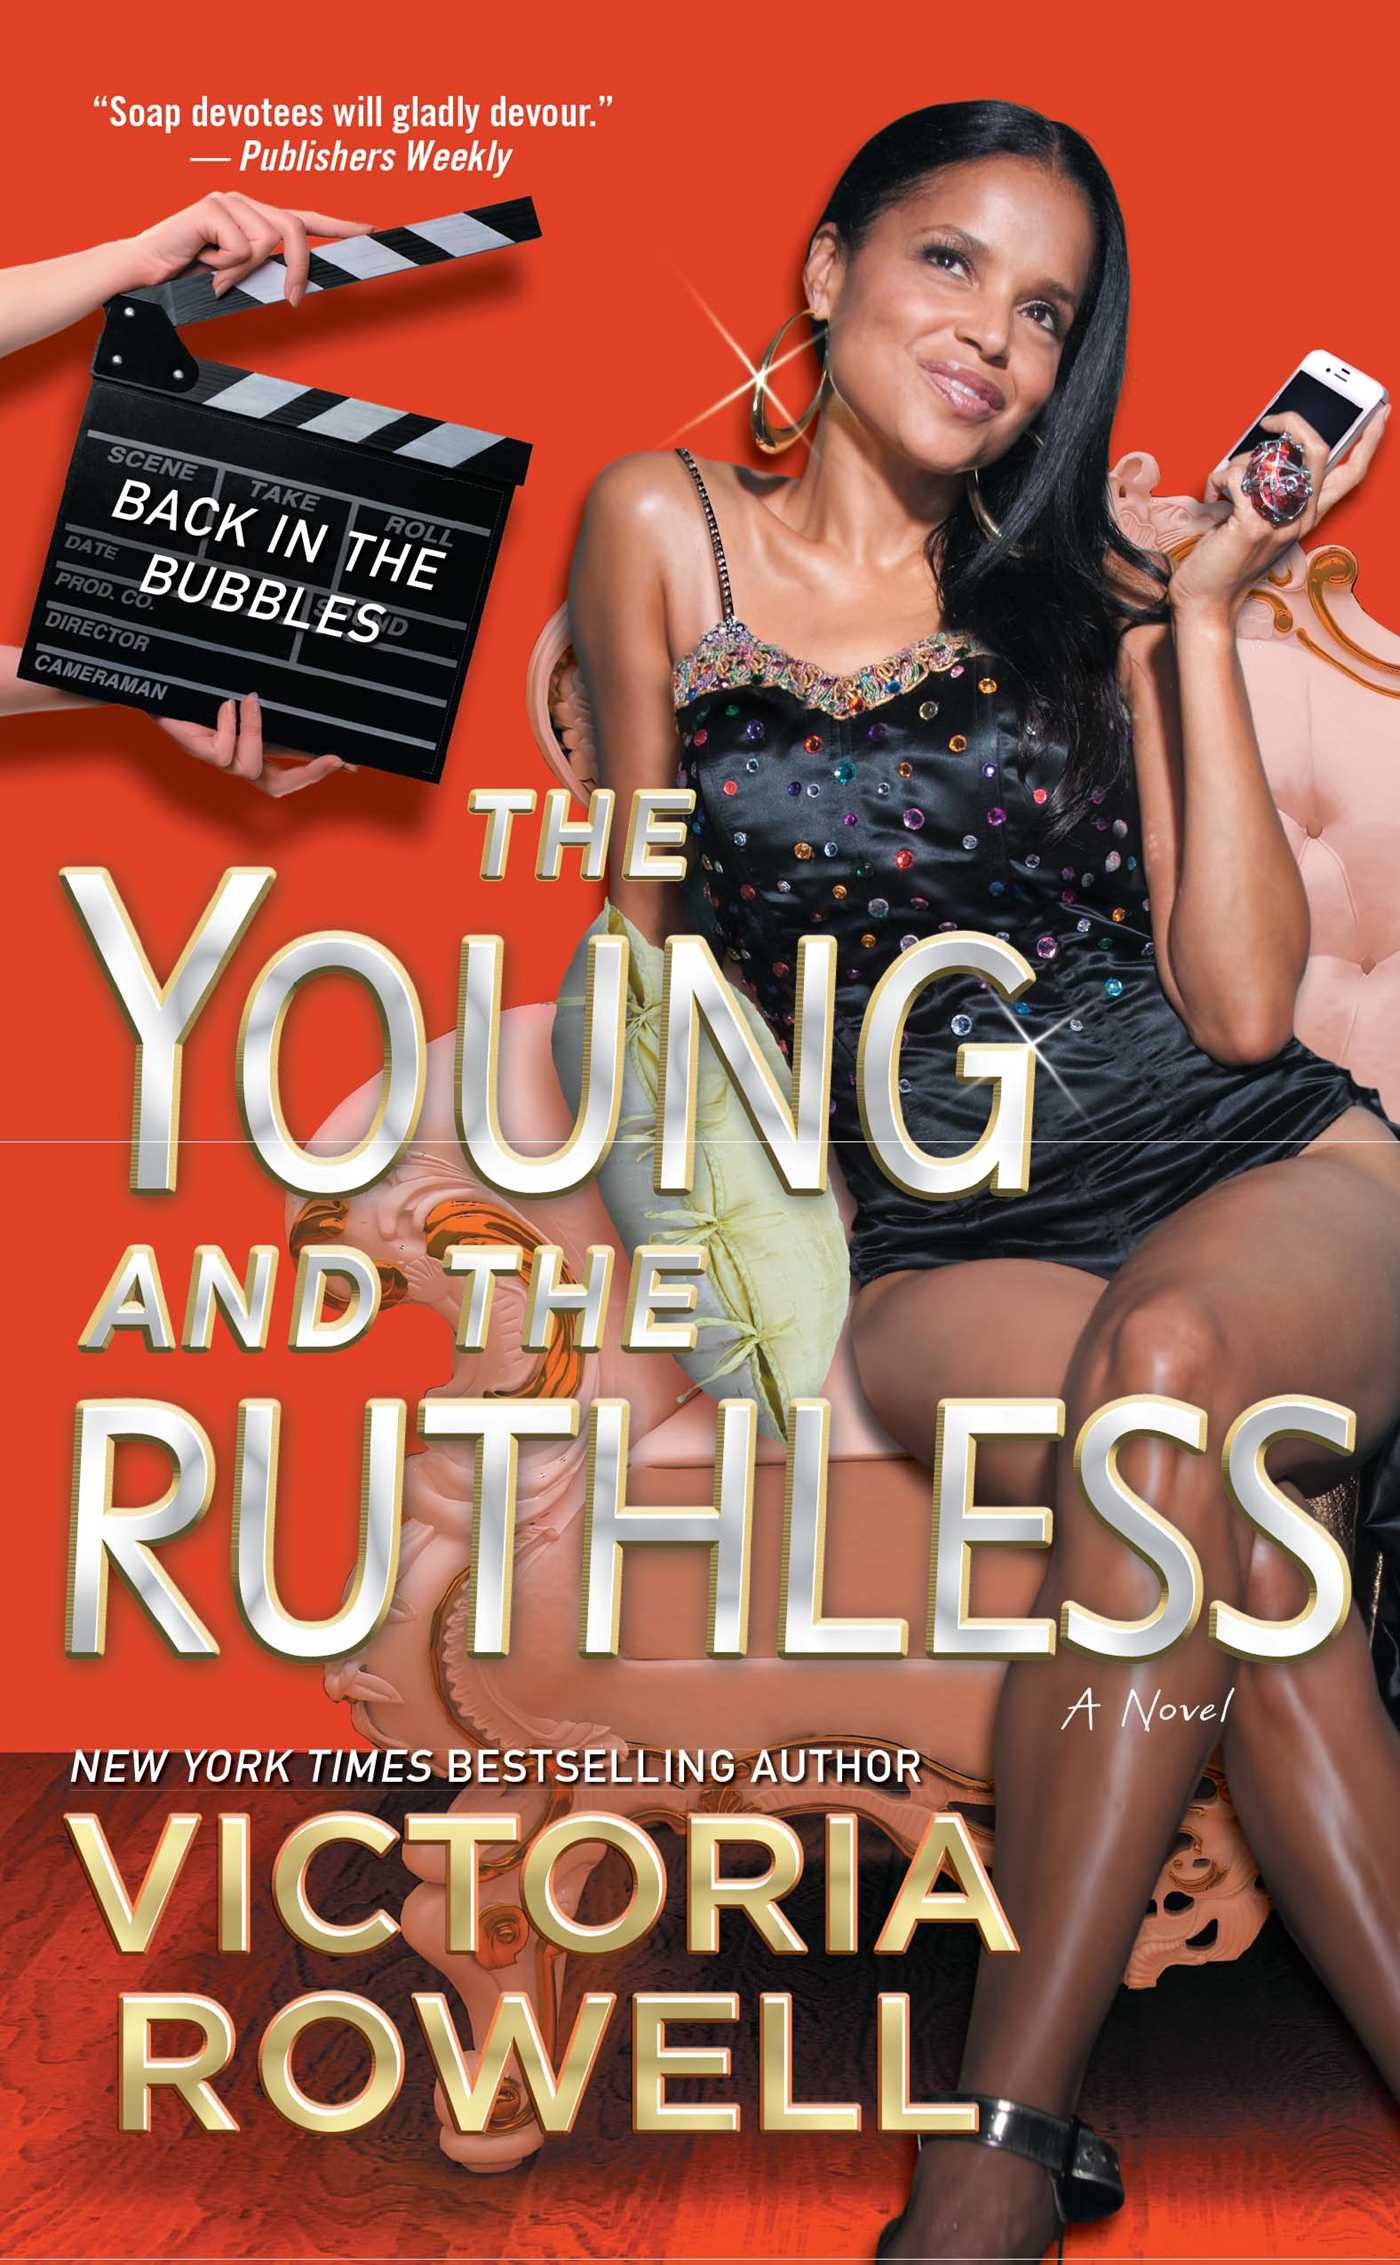 The young and the ruthless 9781451643831 hr